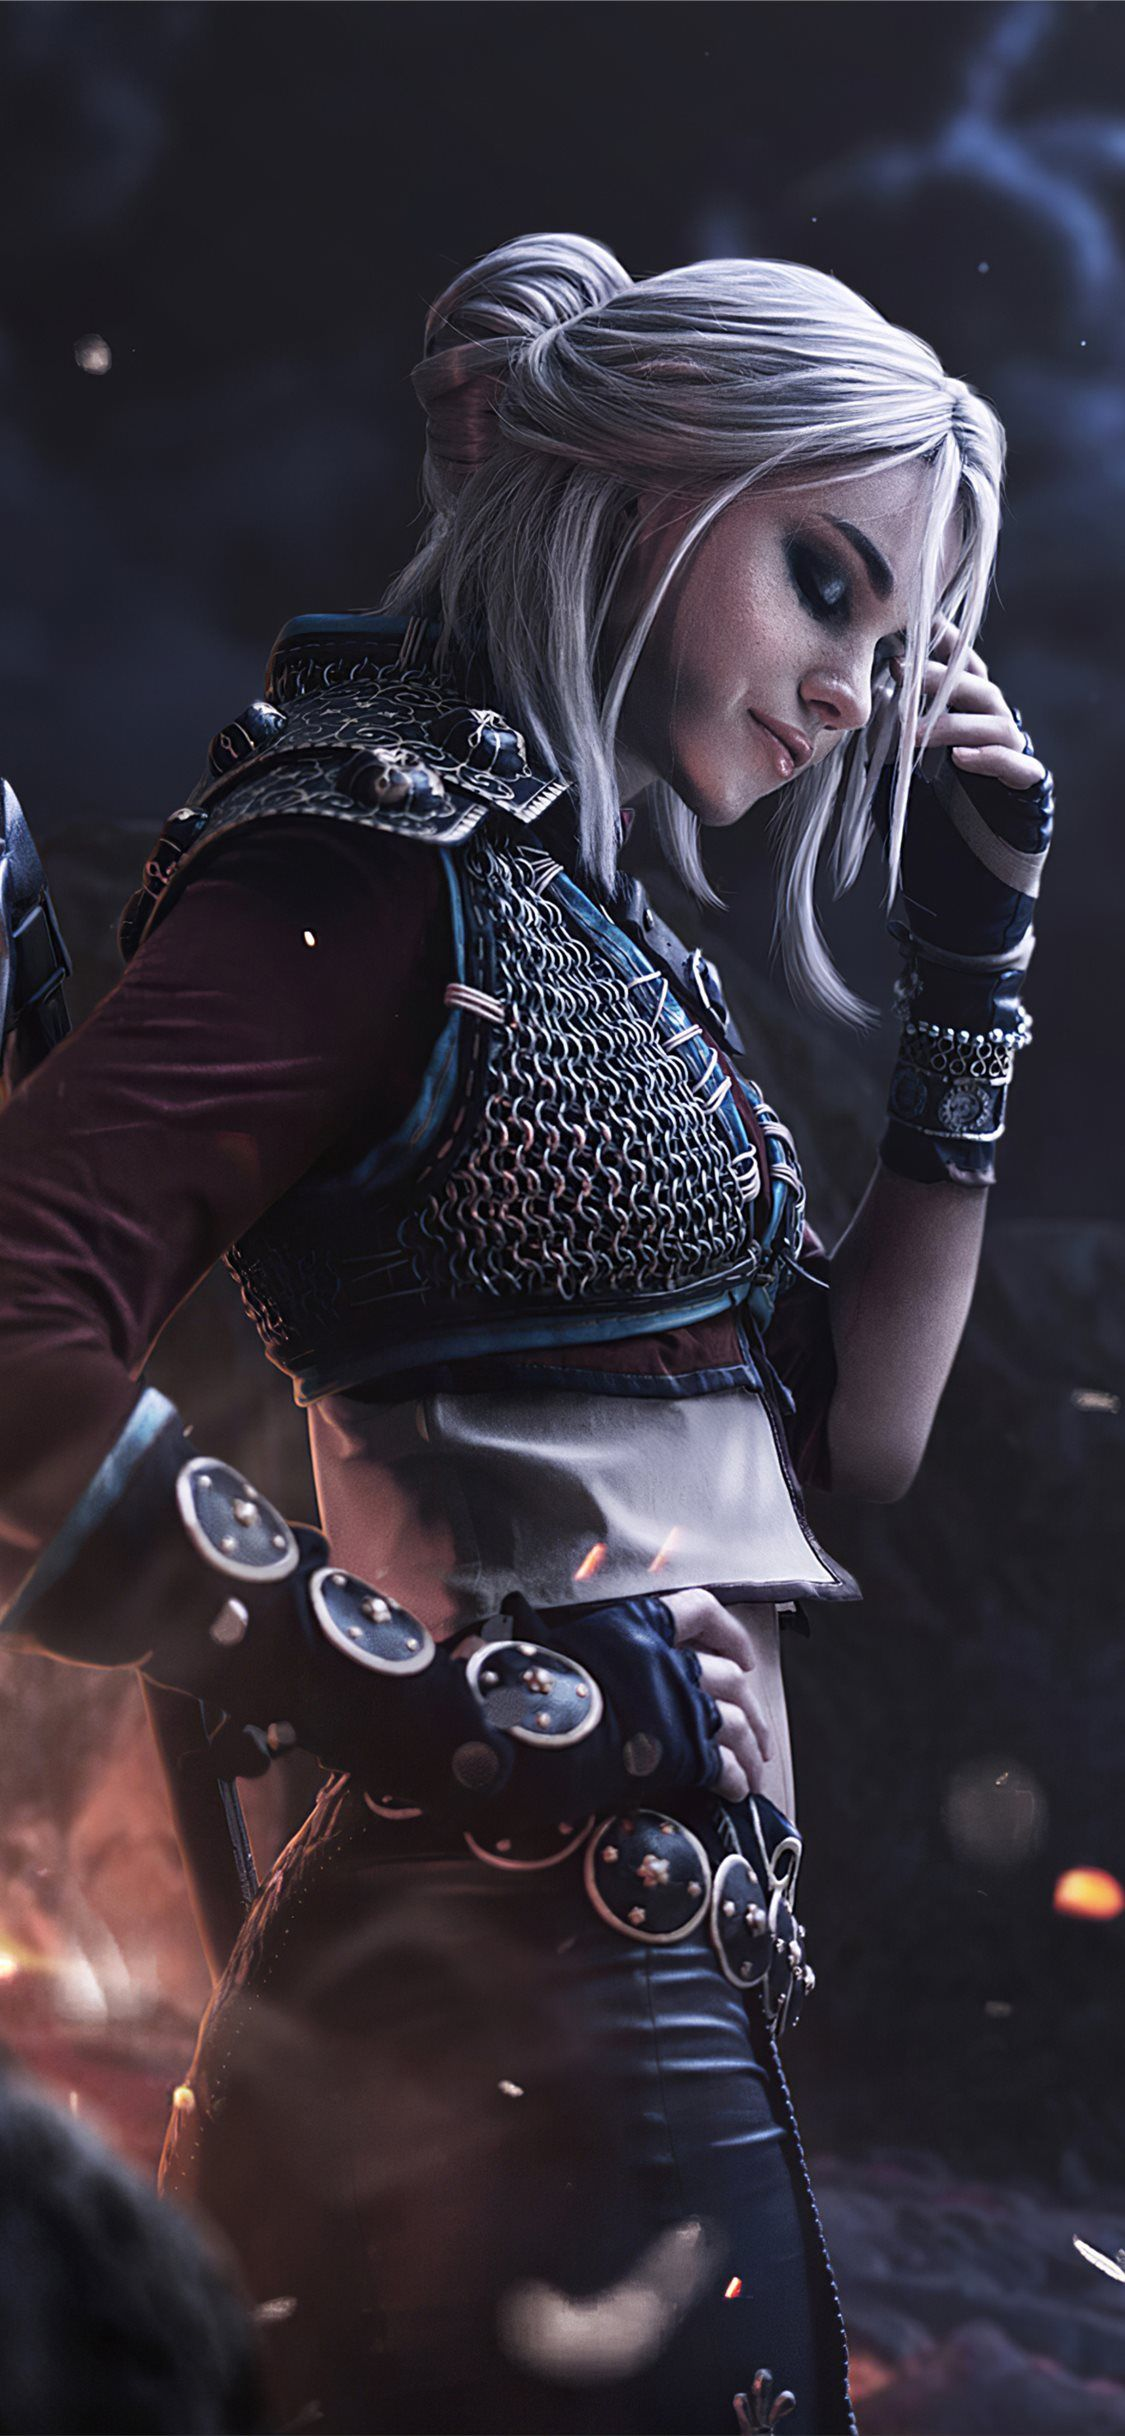 Ciri Witcher Cosplay 4k Ciri Thewitcher3 Games Ps4games Xboxgames Pcgames 4k Iphonexwallpaper In 2020 Ciri Witcher The Witcher Game Witcher Art